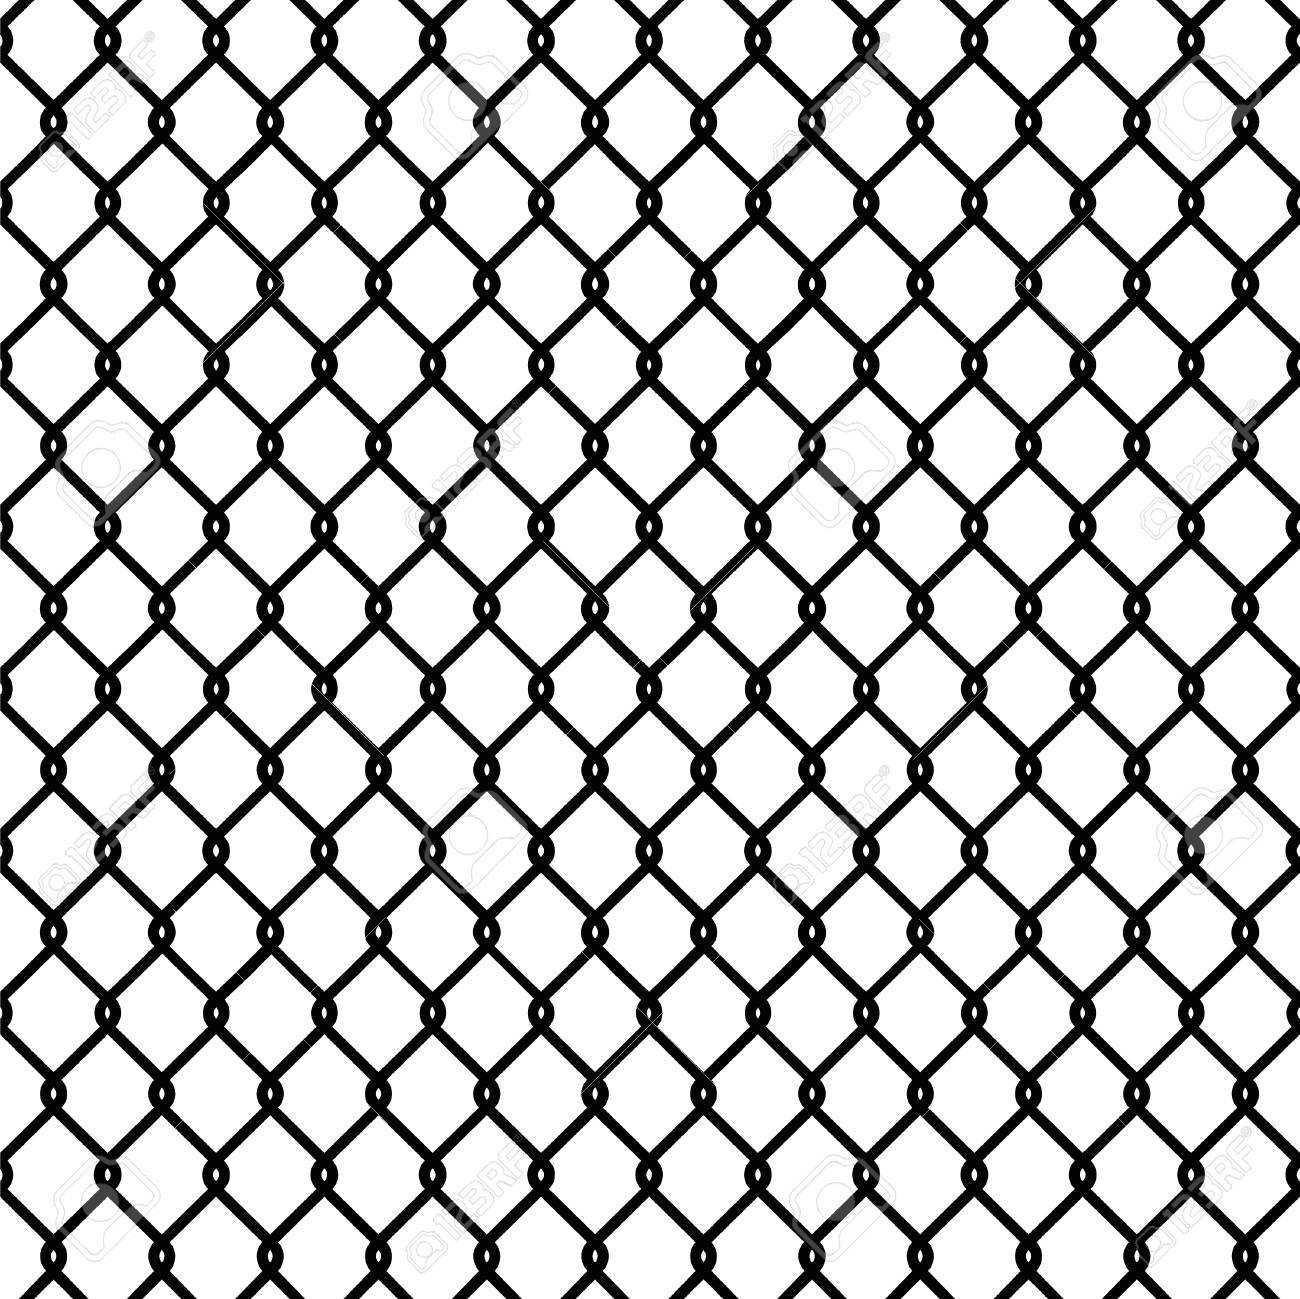 chain link fence texture seamless. Seamless Chain Link Fence Pattern Texture Wallpaper Stock Vector - 56263913